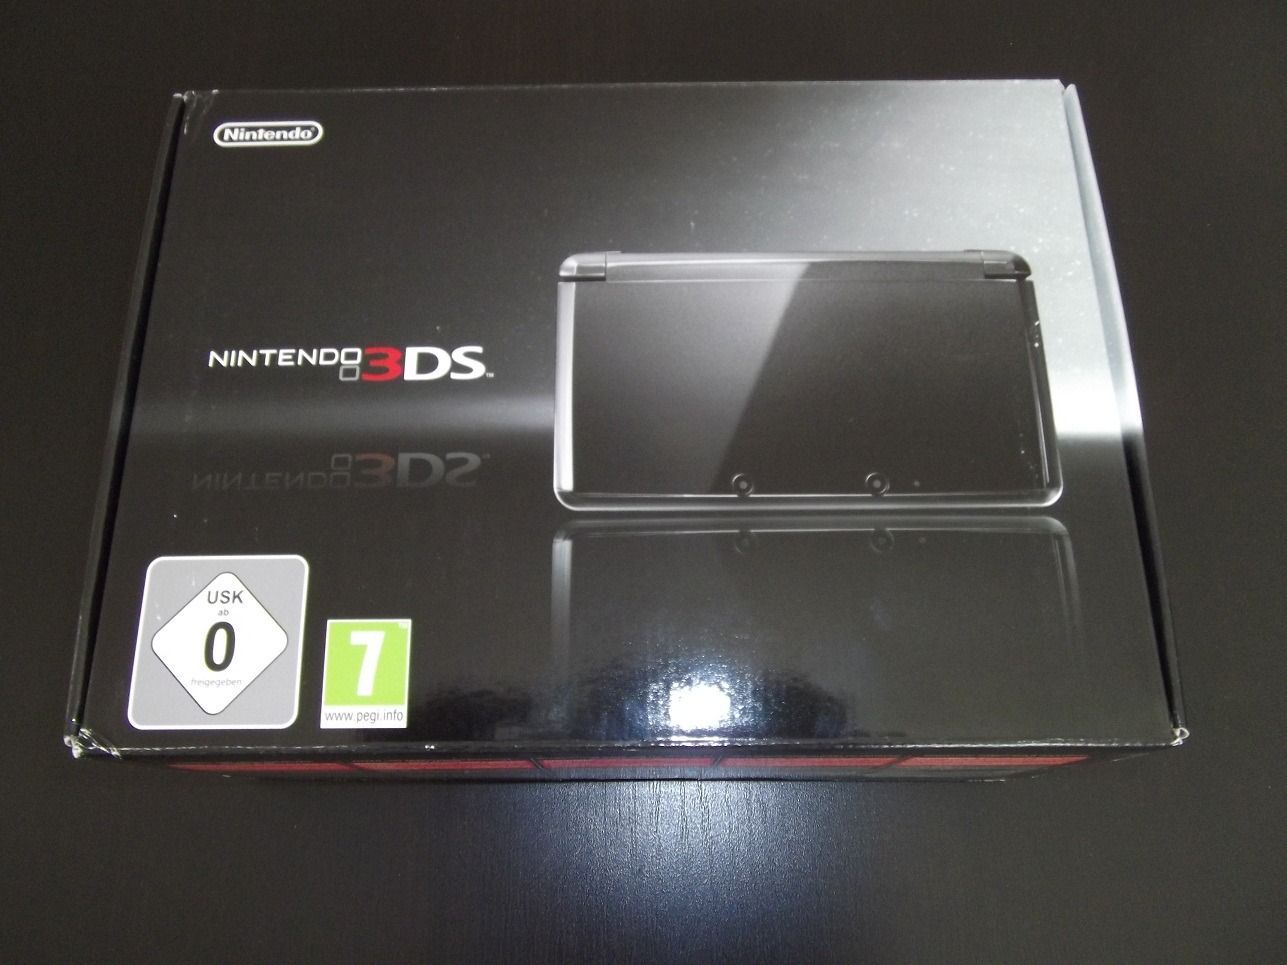 Nintendo 3DS : Cosmo Black